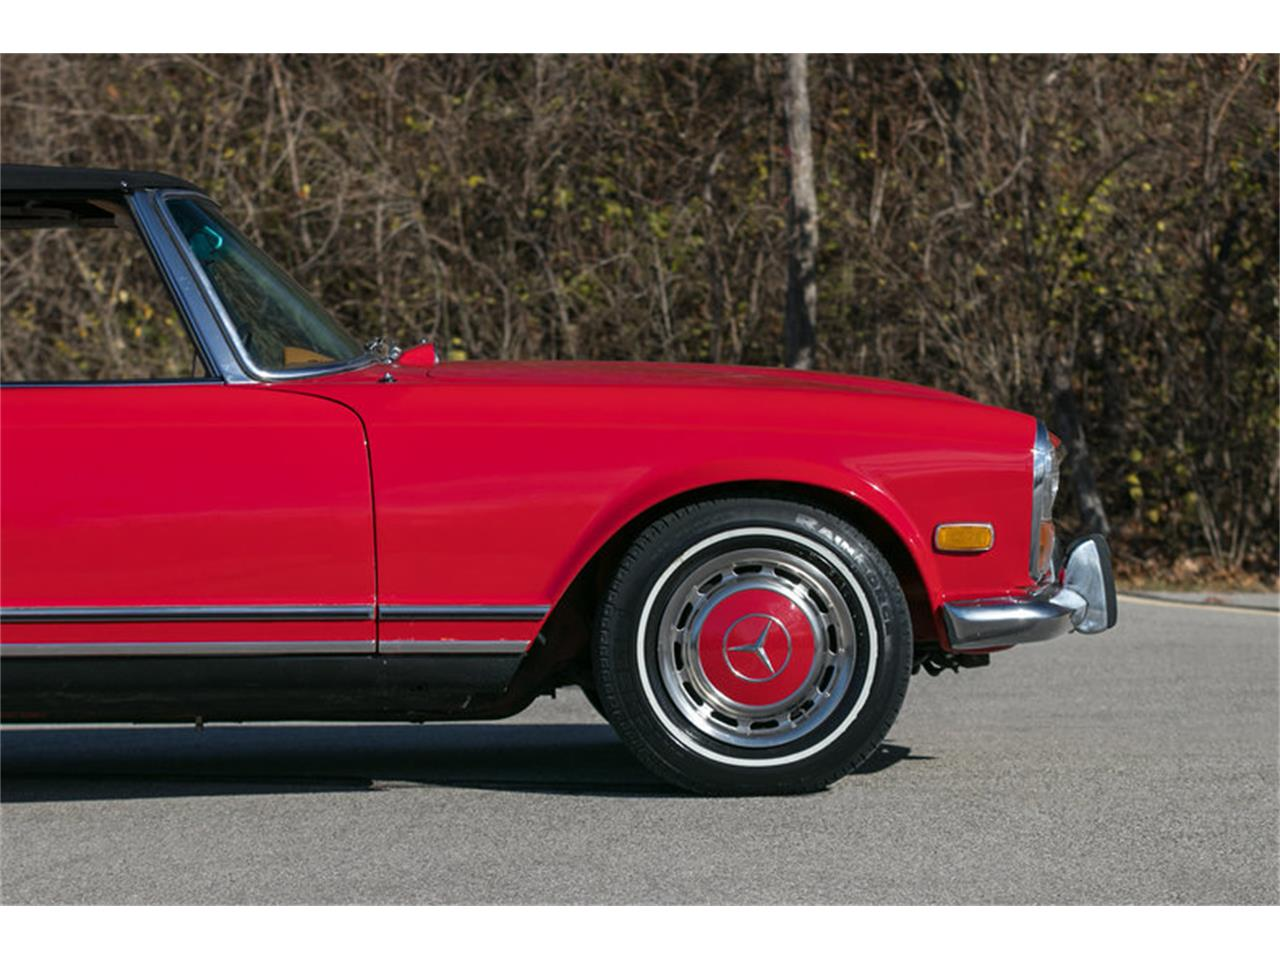 Large Picture of Classic '71 Mercedes-Benz 280SL located in St. Charles Missouri - MFTR